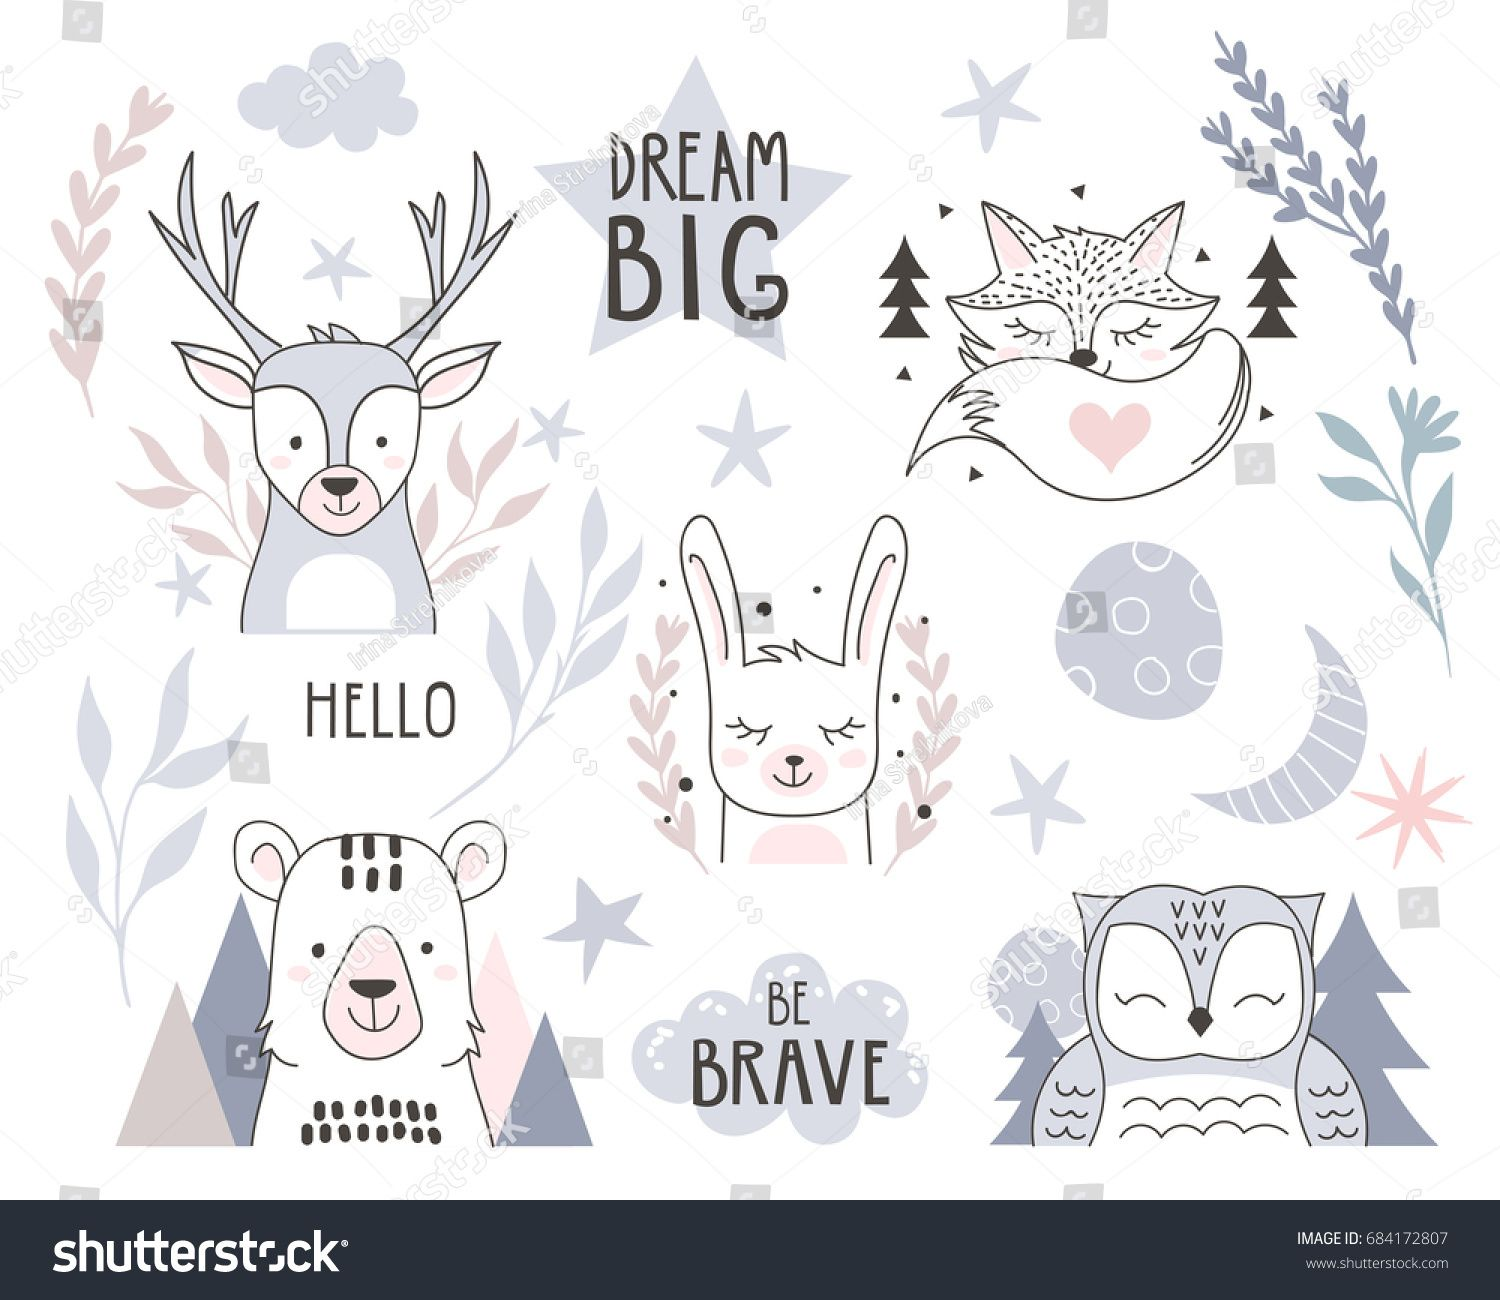 Scandinavian Style Design Element For Nursery Forest Animals Collection With Lettering Element Vect Forest Animals Illustration Animal Doodles Forest Animals